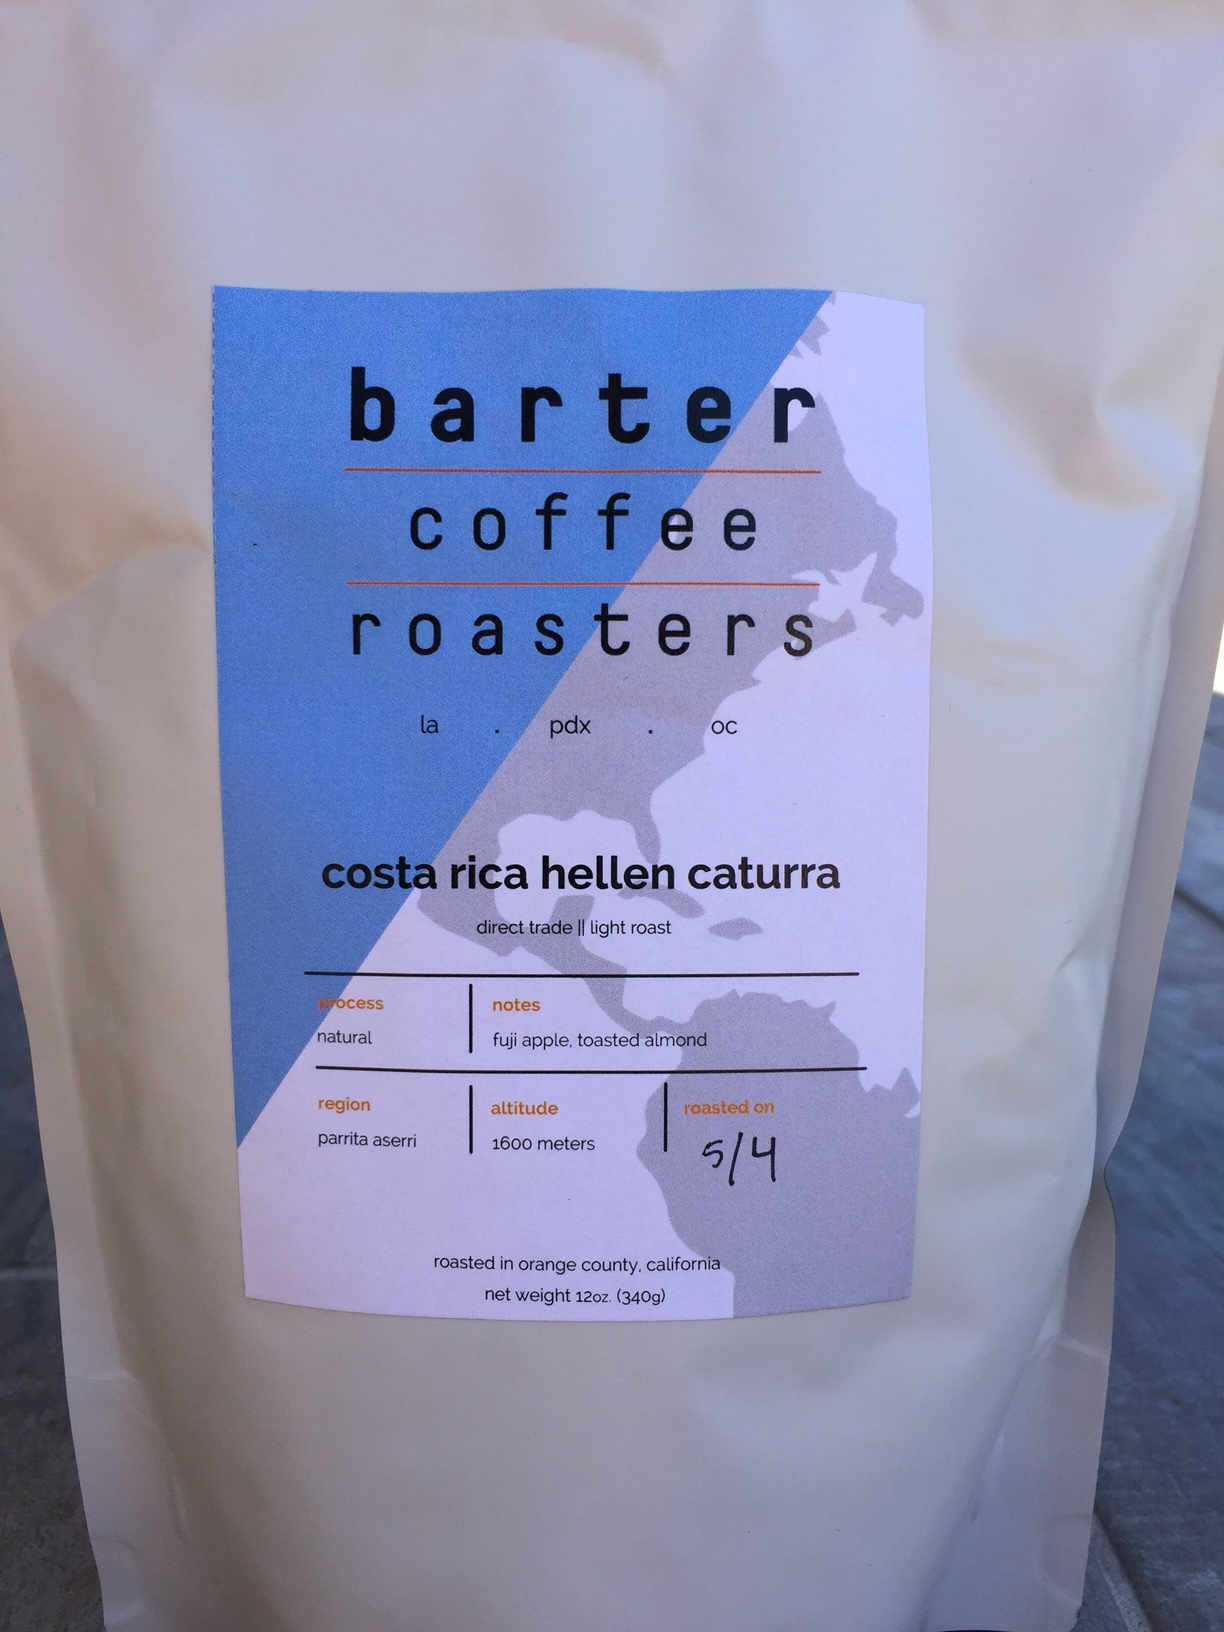 Barter Coffee Roasters Costa Rica